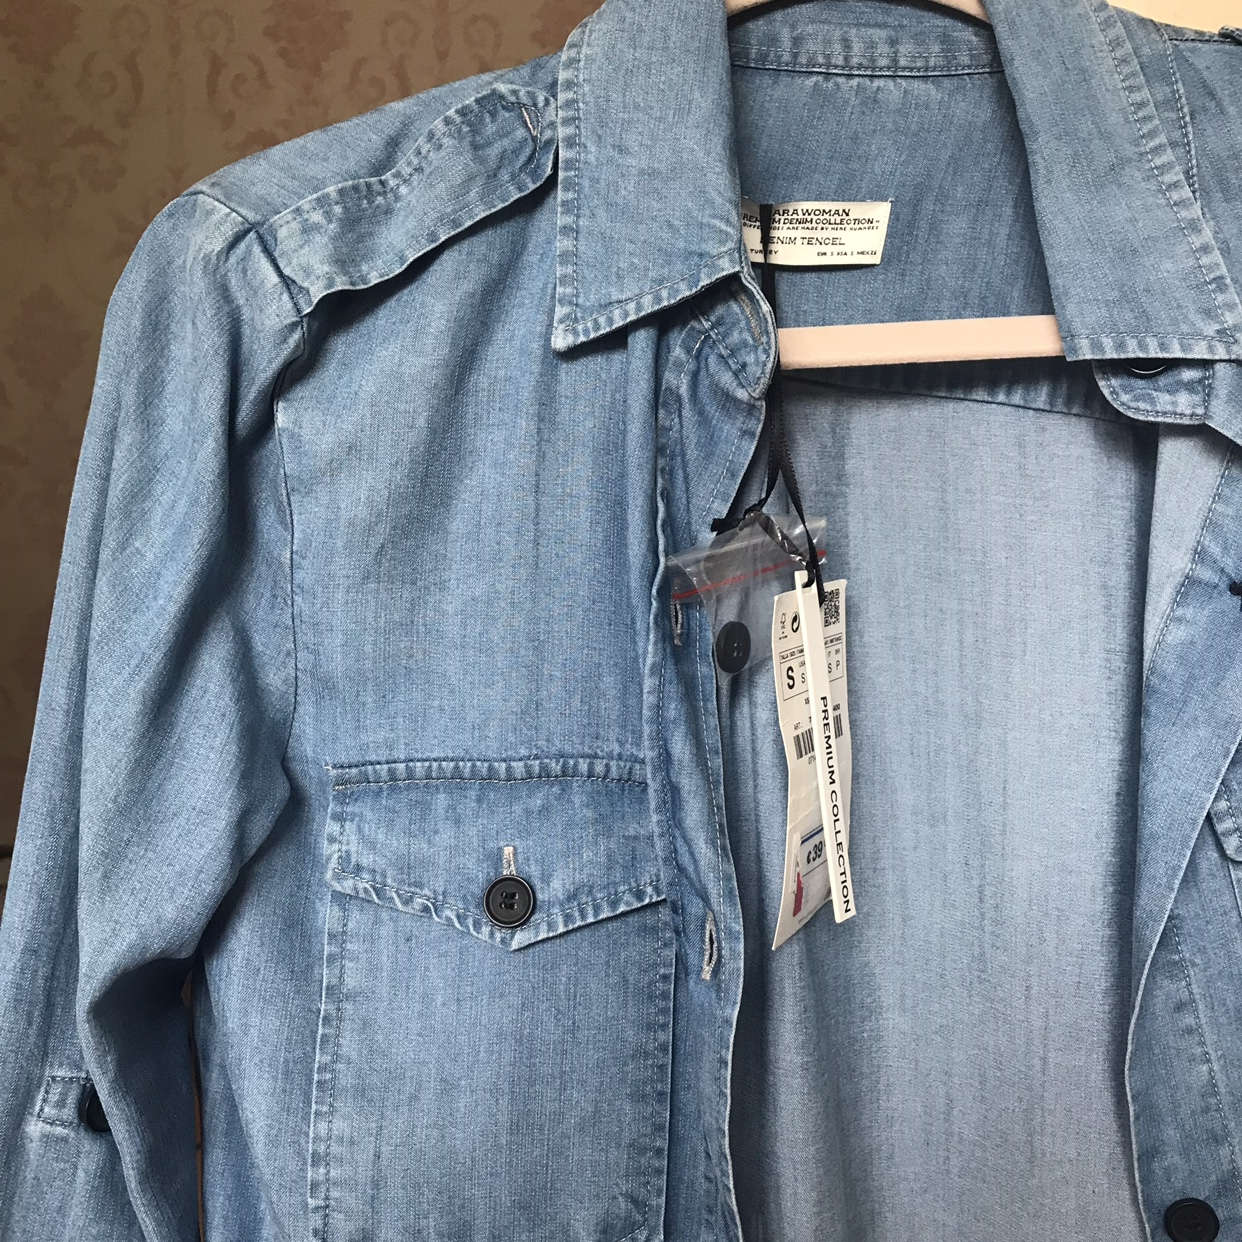 Lovely Blue Shirt From Zara New With Tags Size Depop